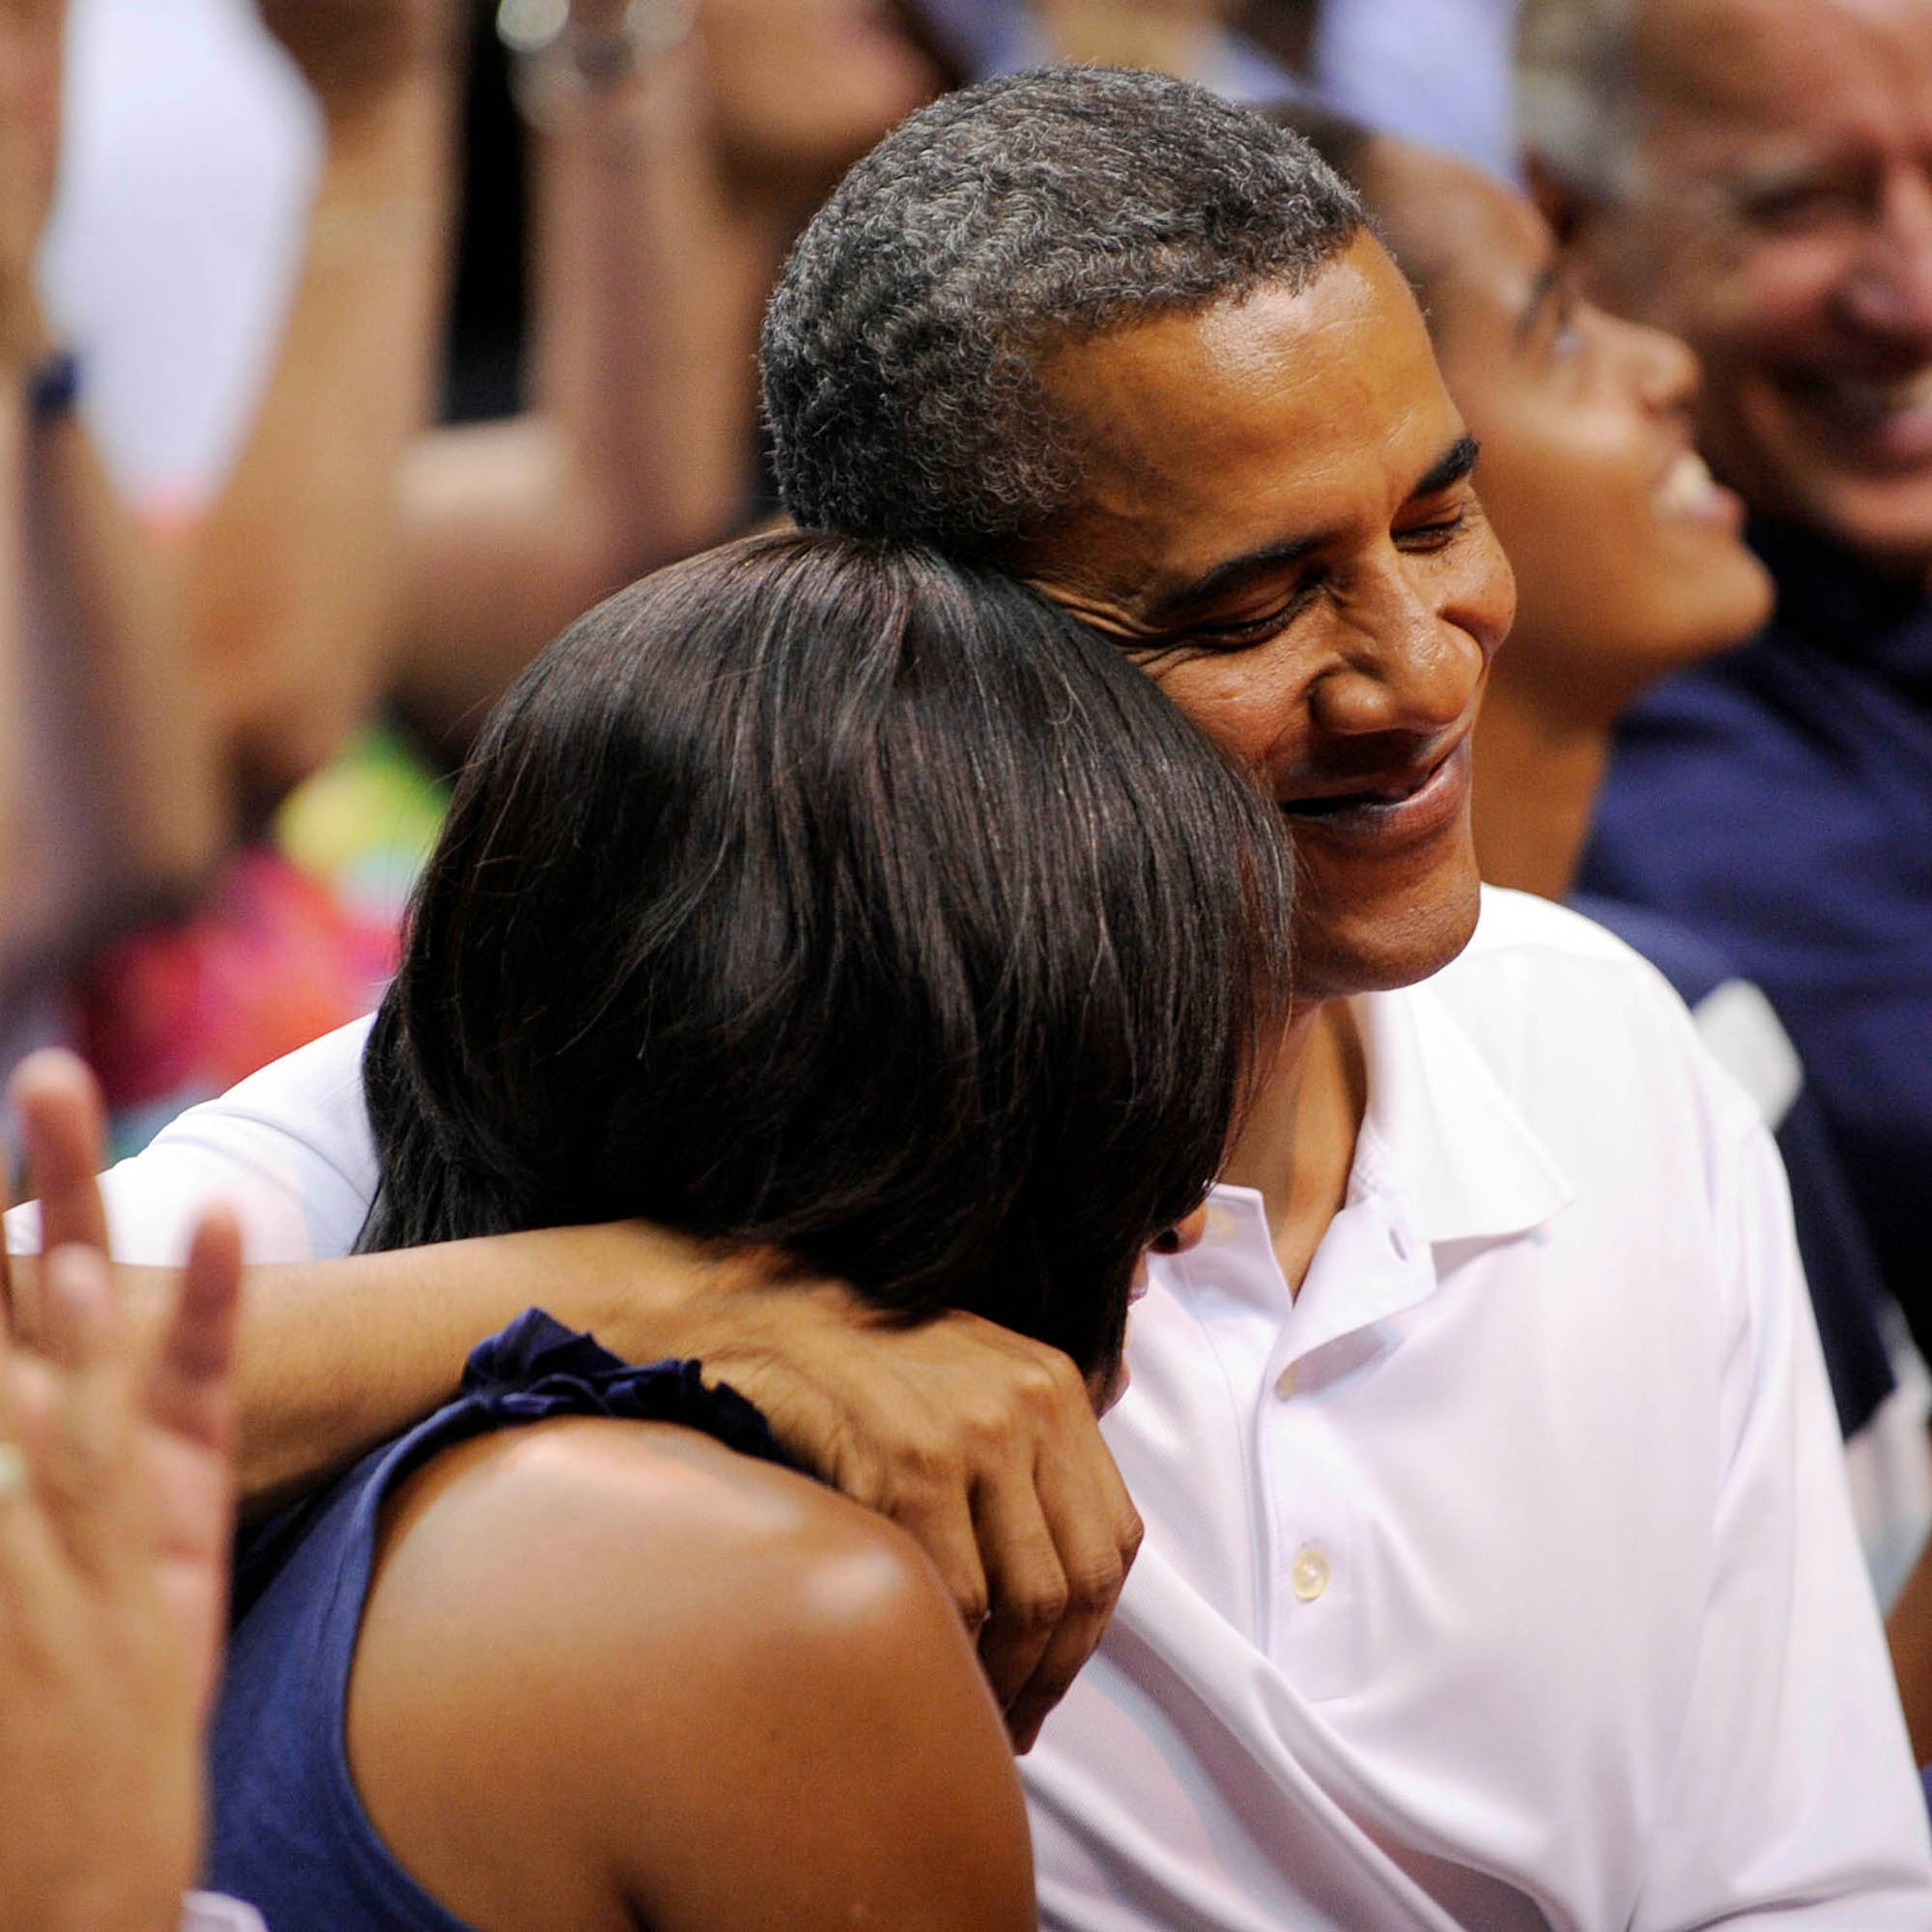 -Washington, District of Columbia - 07/16/2012 - United States President Barack Obama, First LAdy Michelle Obama and Vice President Joe Biden Attend the Olympics-bound U.S. men's national basketball team game against Brazil, at the Verizon Center. -PICTURED: Barack Obama,Michelle Obama -, Image: 137951240, License: Rights-managed, Restrictions: , Model Release: no, Credit line: Leslie E. Kossoff / INSTAR Images / Profimedia